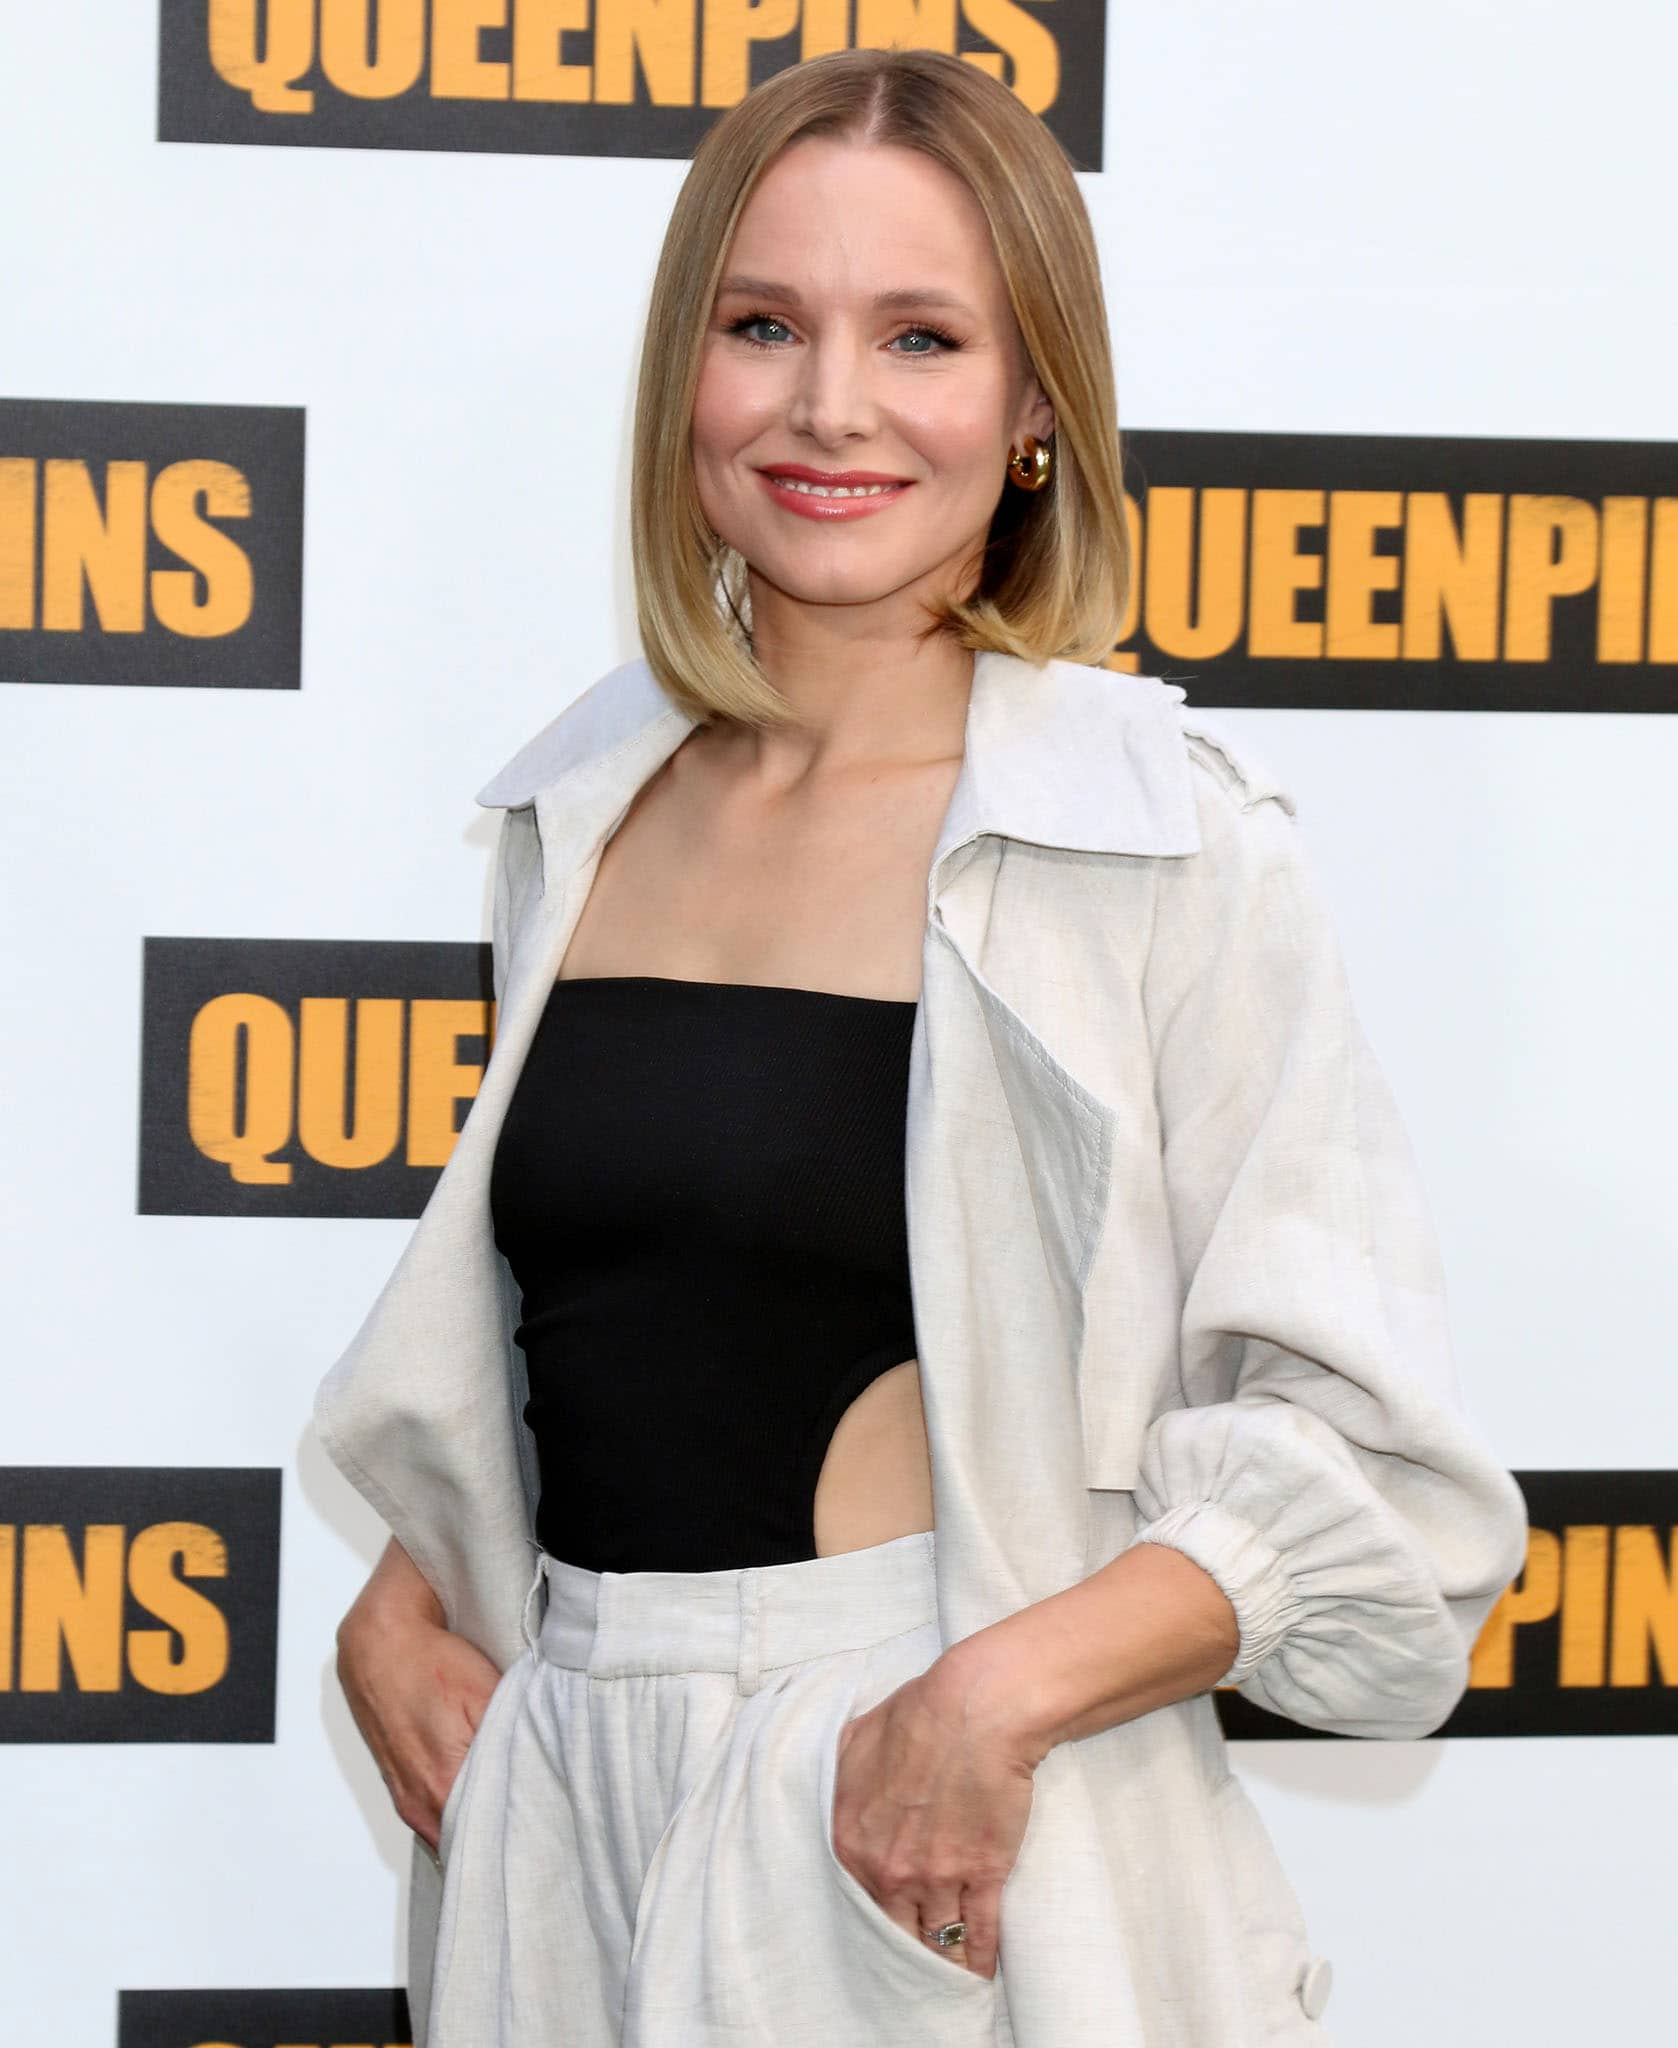 Kristen Bell wears her signature blunt bob hairstyle with soft pink makeup